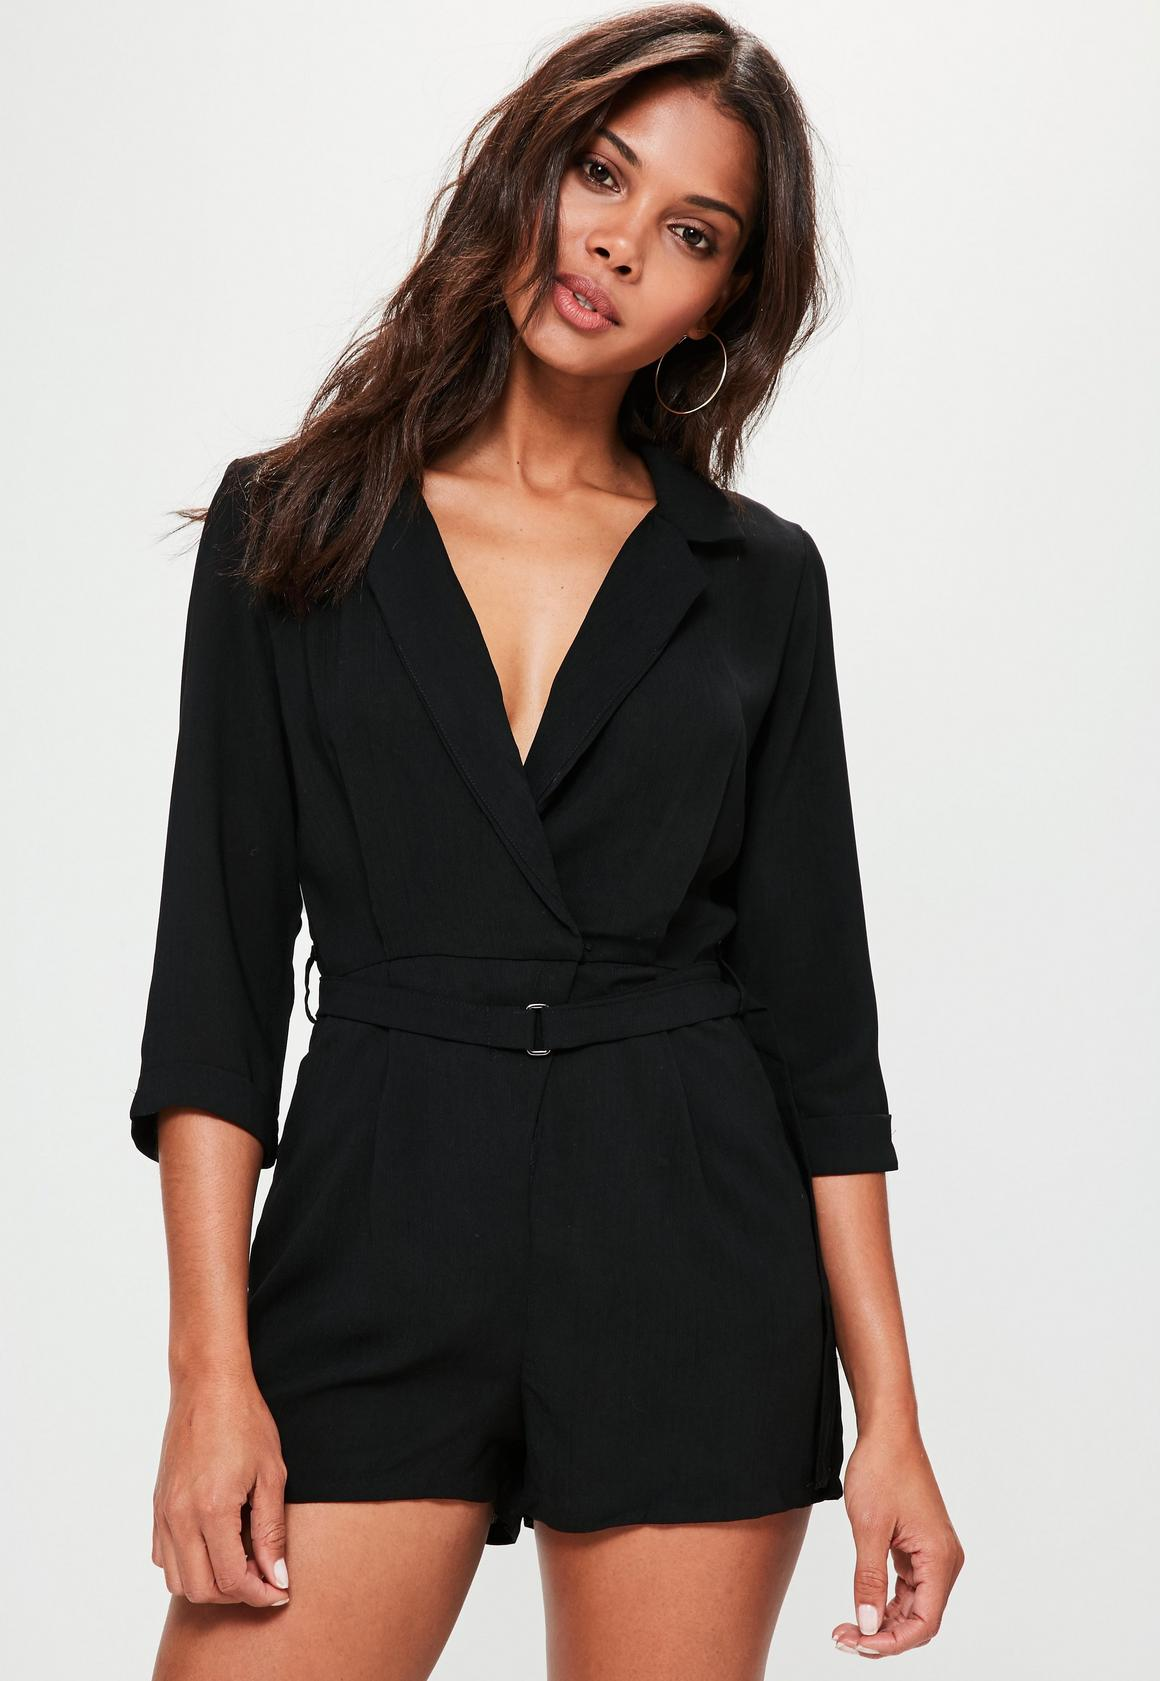 Black t shirt playsuit - Black Wrap Blazer Playsuit Black Wrap Blazer Playsuit